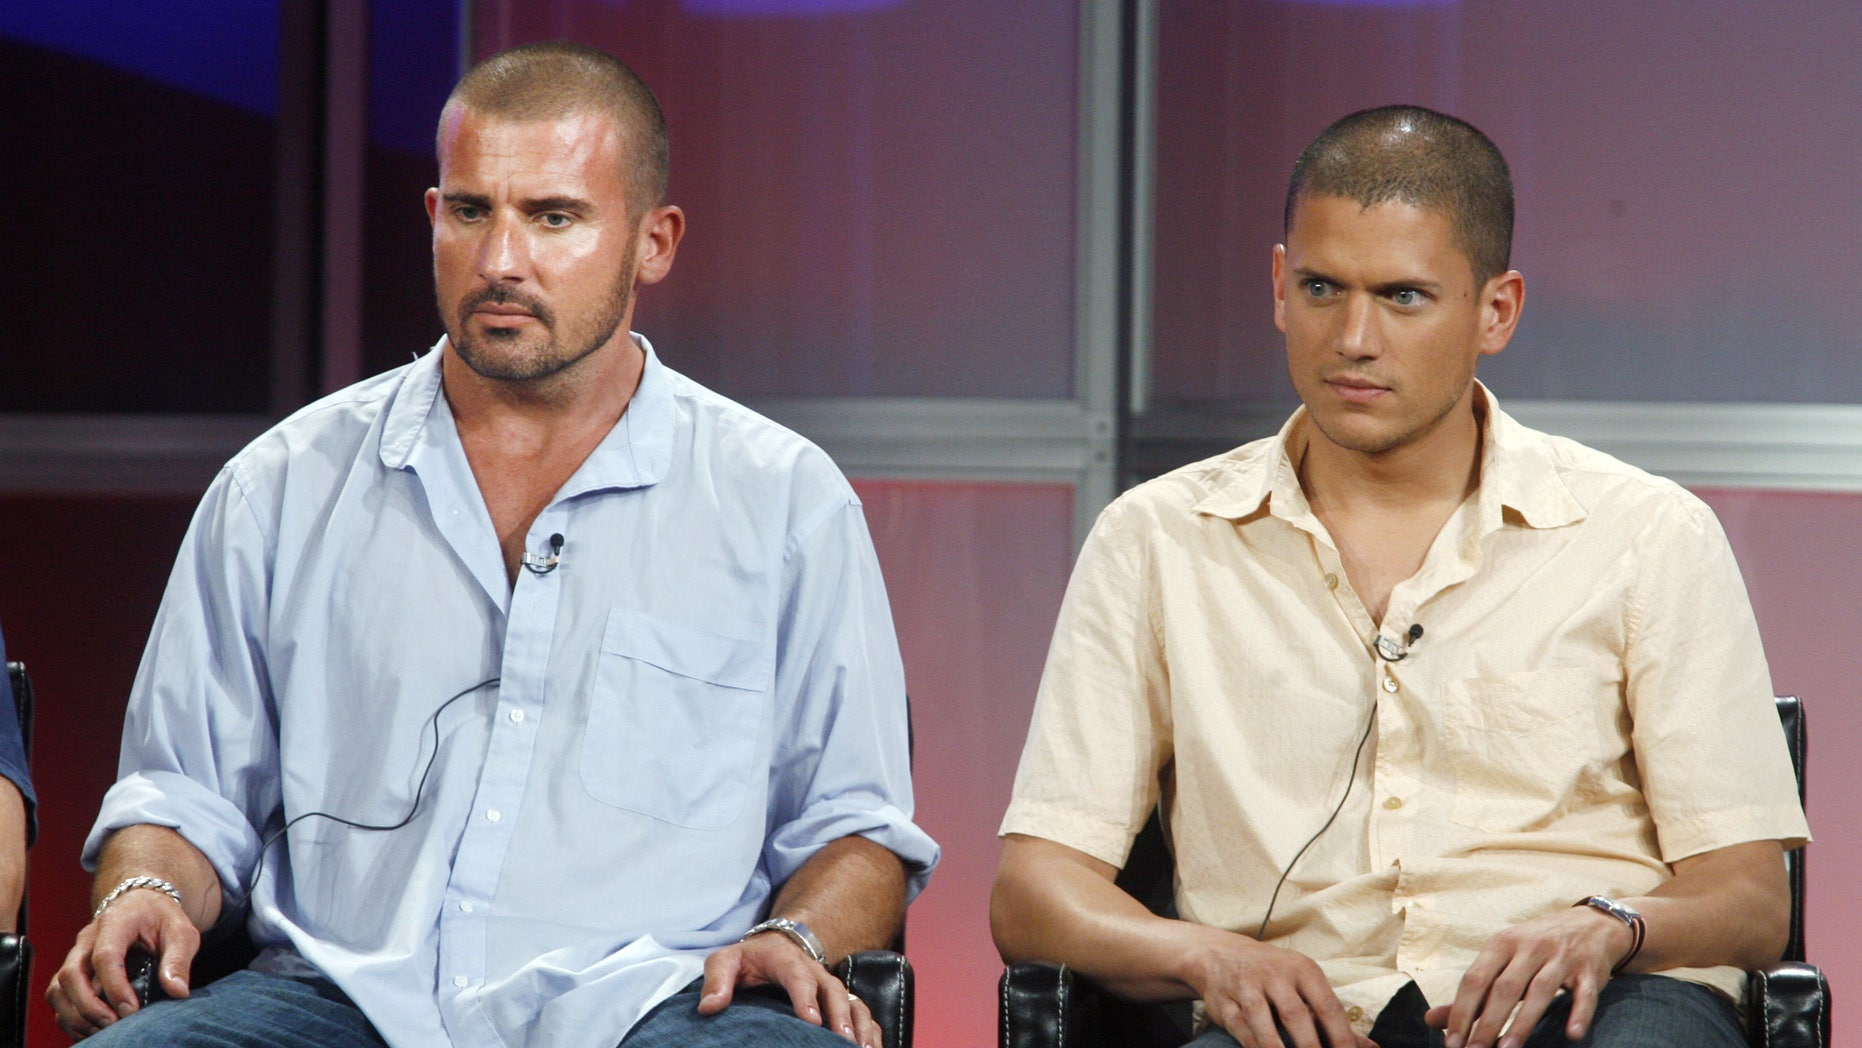 Actors Dominic Purcell (L) and Wentworth Miller, stars of the Fox television network drama series 'Prison Break,' about a group of escaped prisoners, answers questions during a panel discussion at the Television Critics Association summer media tour in Pasadena, California July 24, 2006. The show premieres Fall 2006. REUTERS/Fred Prouser (UNITED STATES) - RTR1FSNW